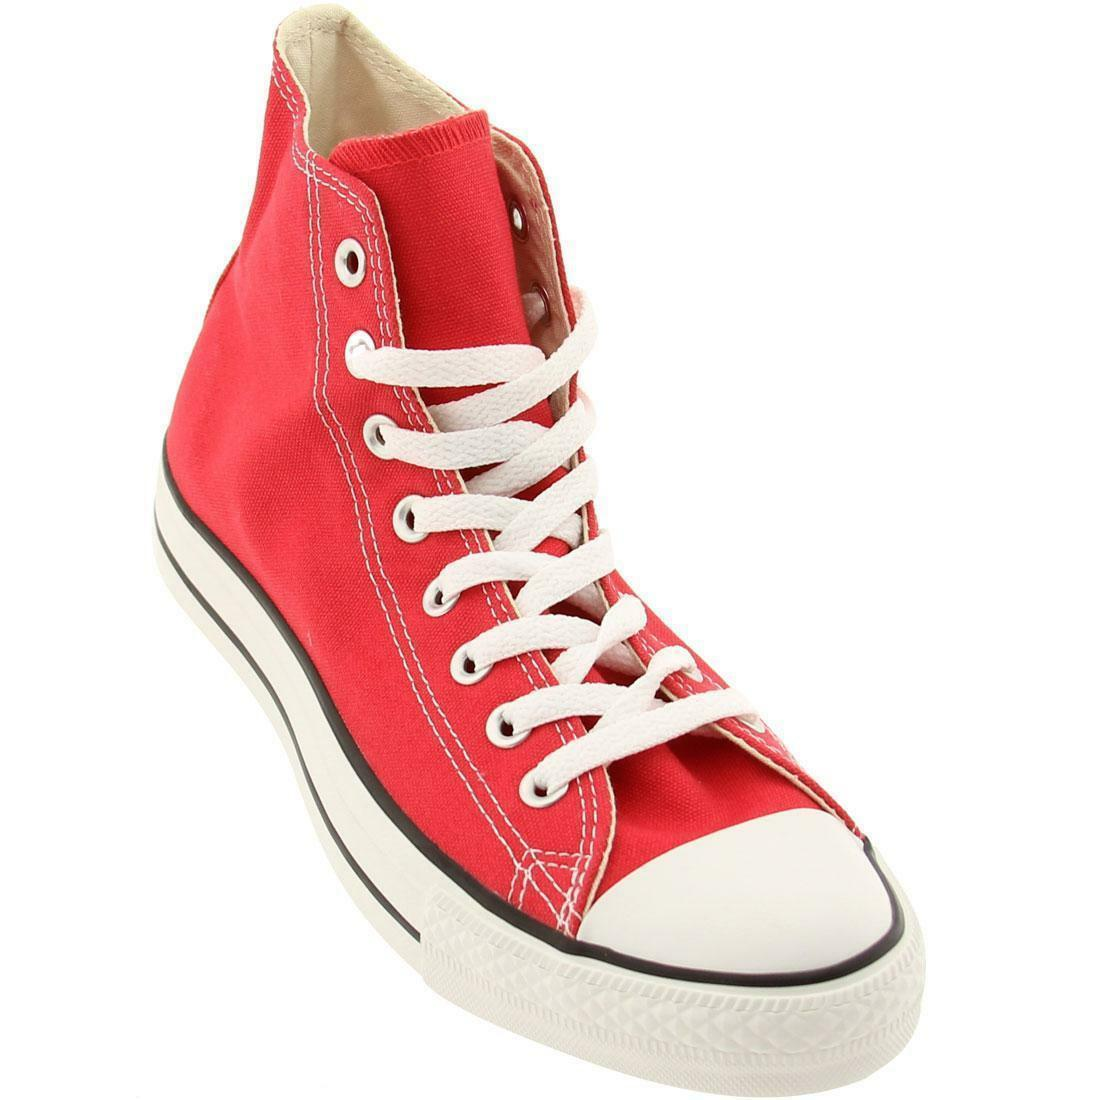 CONVERSE CHOCK TAYLOR ALL STAR HI CANVAS MEN skor röd M9621 storLEK 13 ny